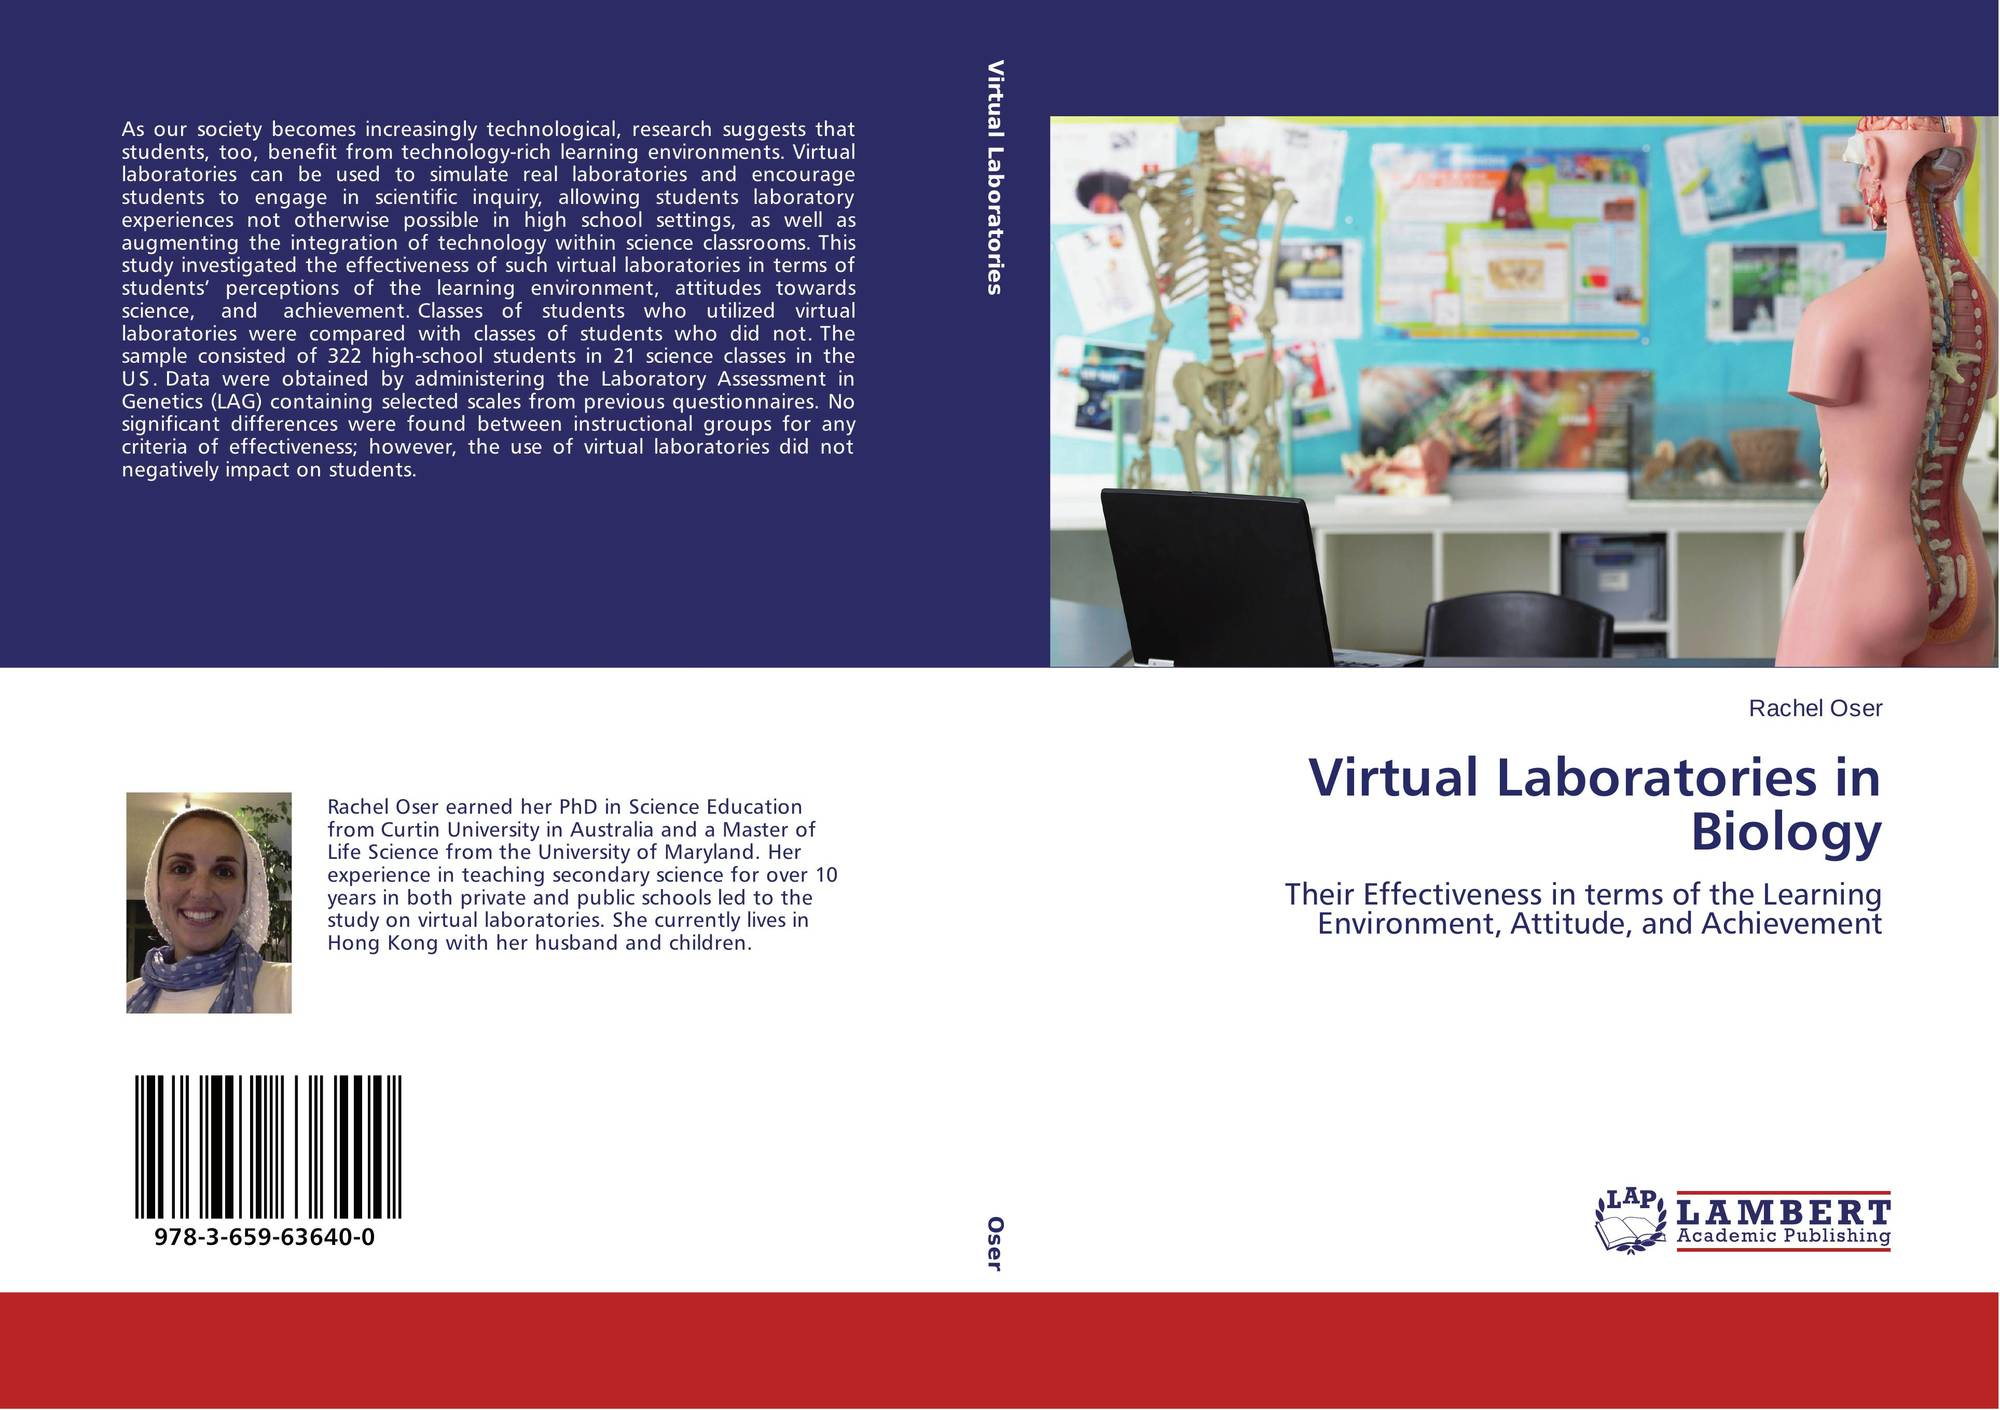 biology lab for virtual school lesson 1 Virtual chemistry lab - by carnegie mellon university and best used as a supplement for high school ages discovery education's young scientist lab - lesson plans and interactives this won't cover an entire year, but it can be a strong supplement.